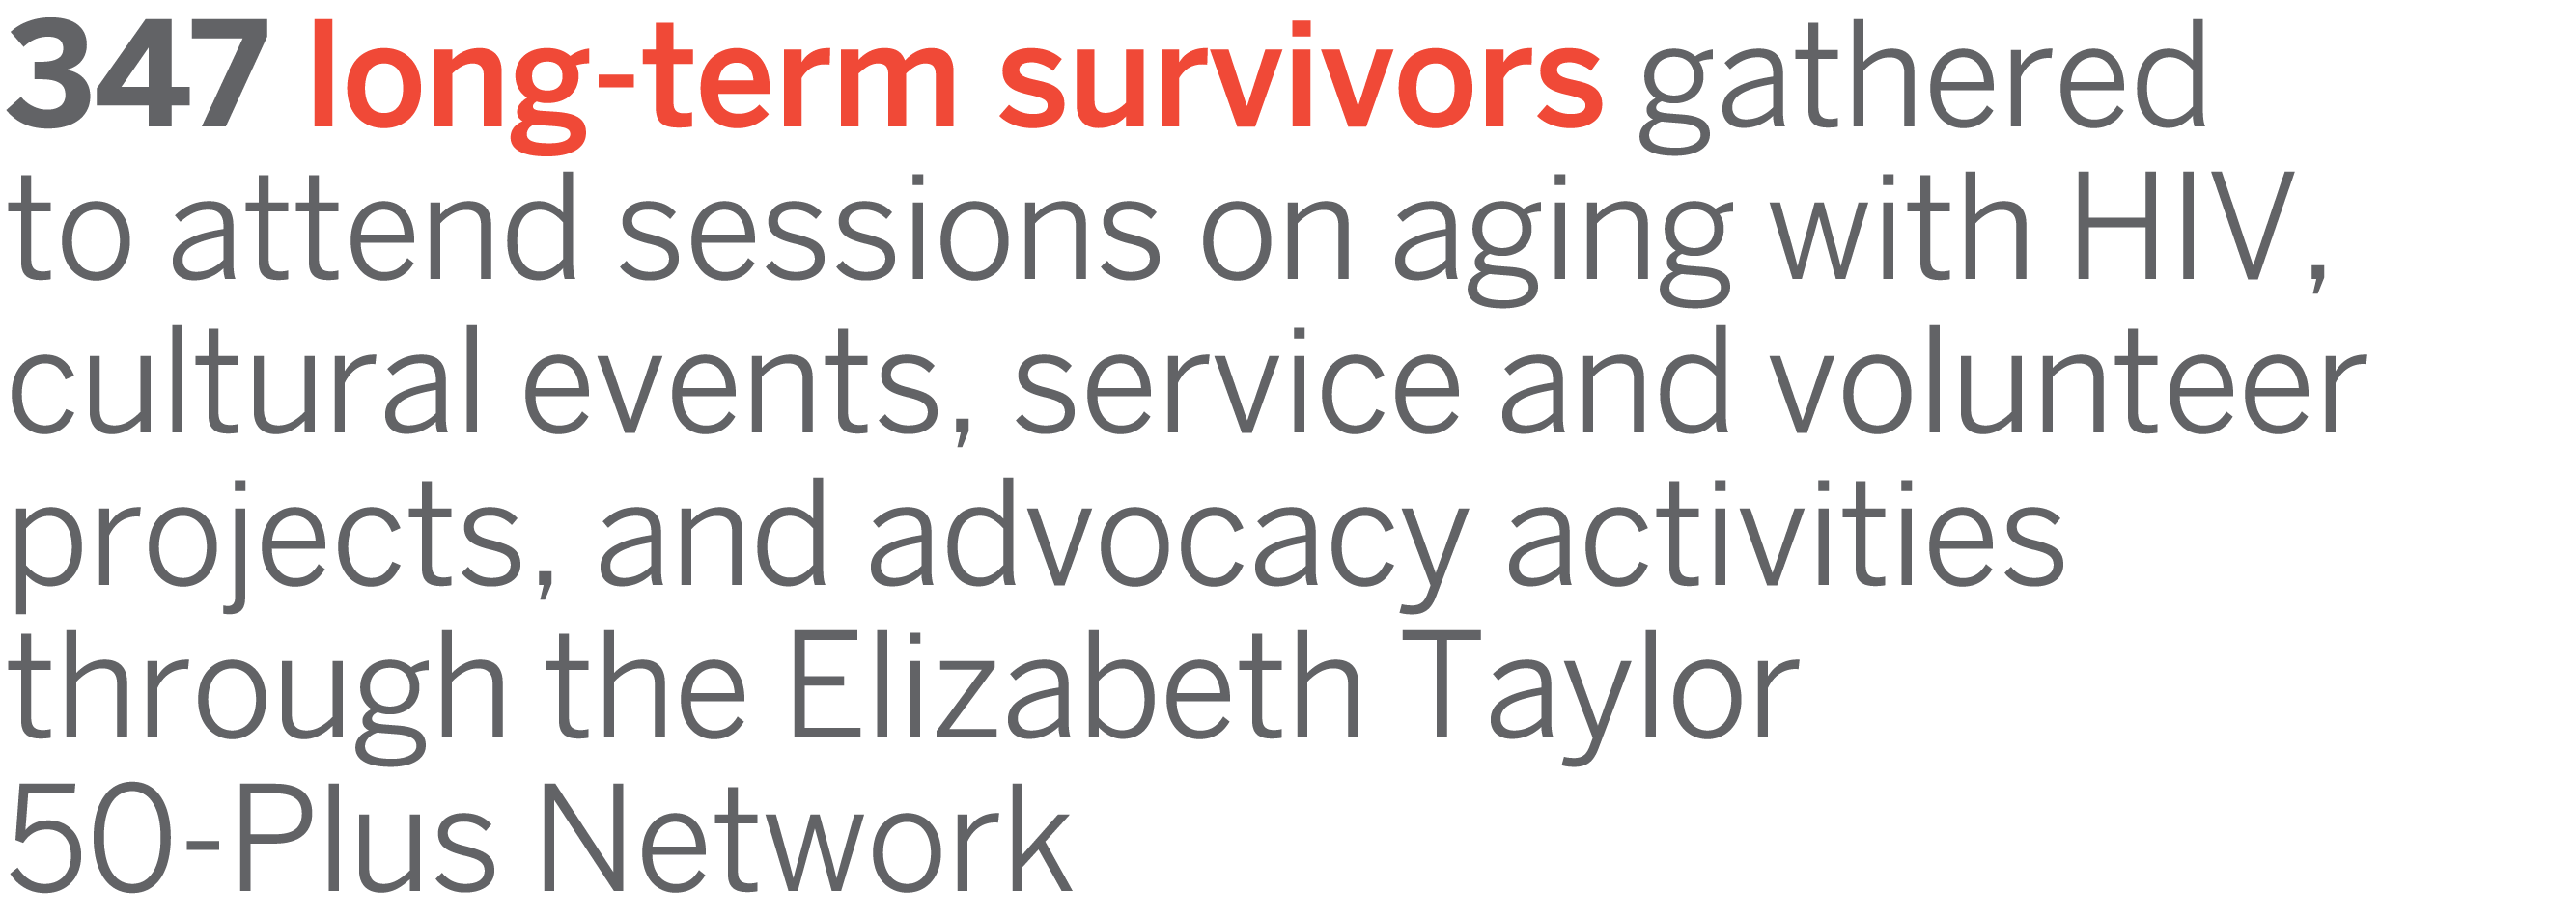 347 long-term survivors gathered to attend sessions on aging with HIV, cultural events, service and volunteer projects, and advocacy activities through the Elizabeth Taylor 50-Plus Network